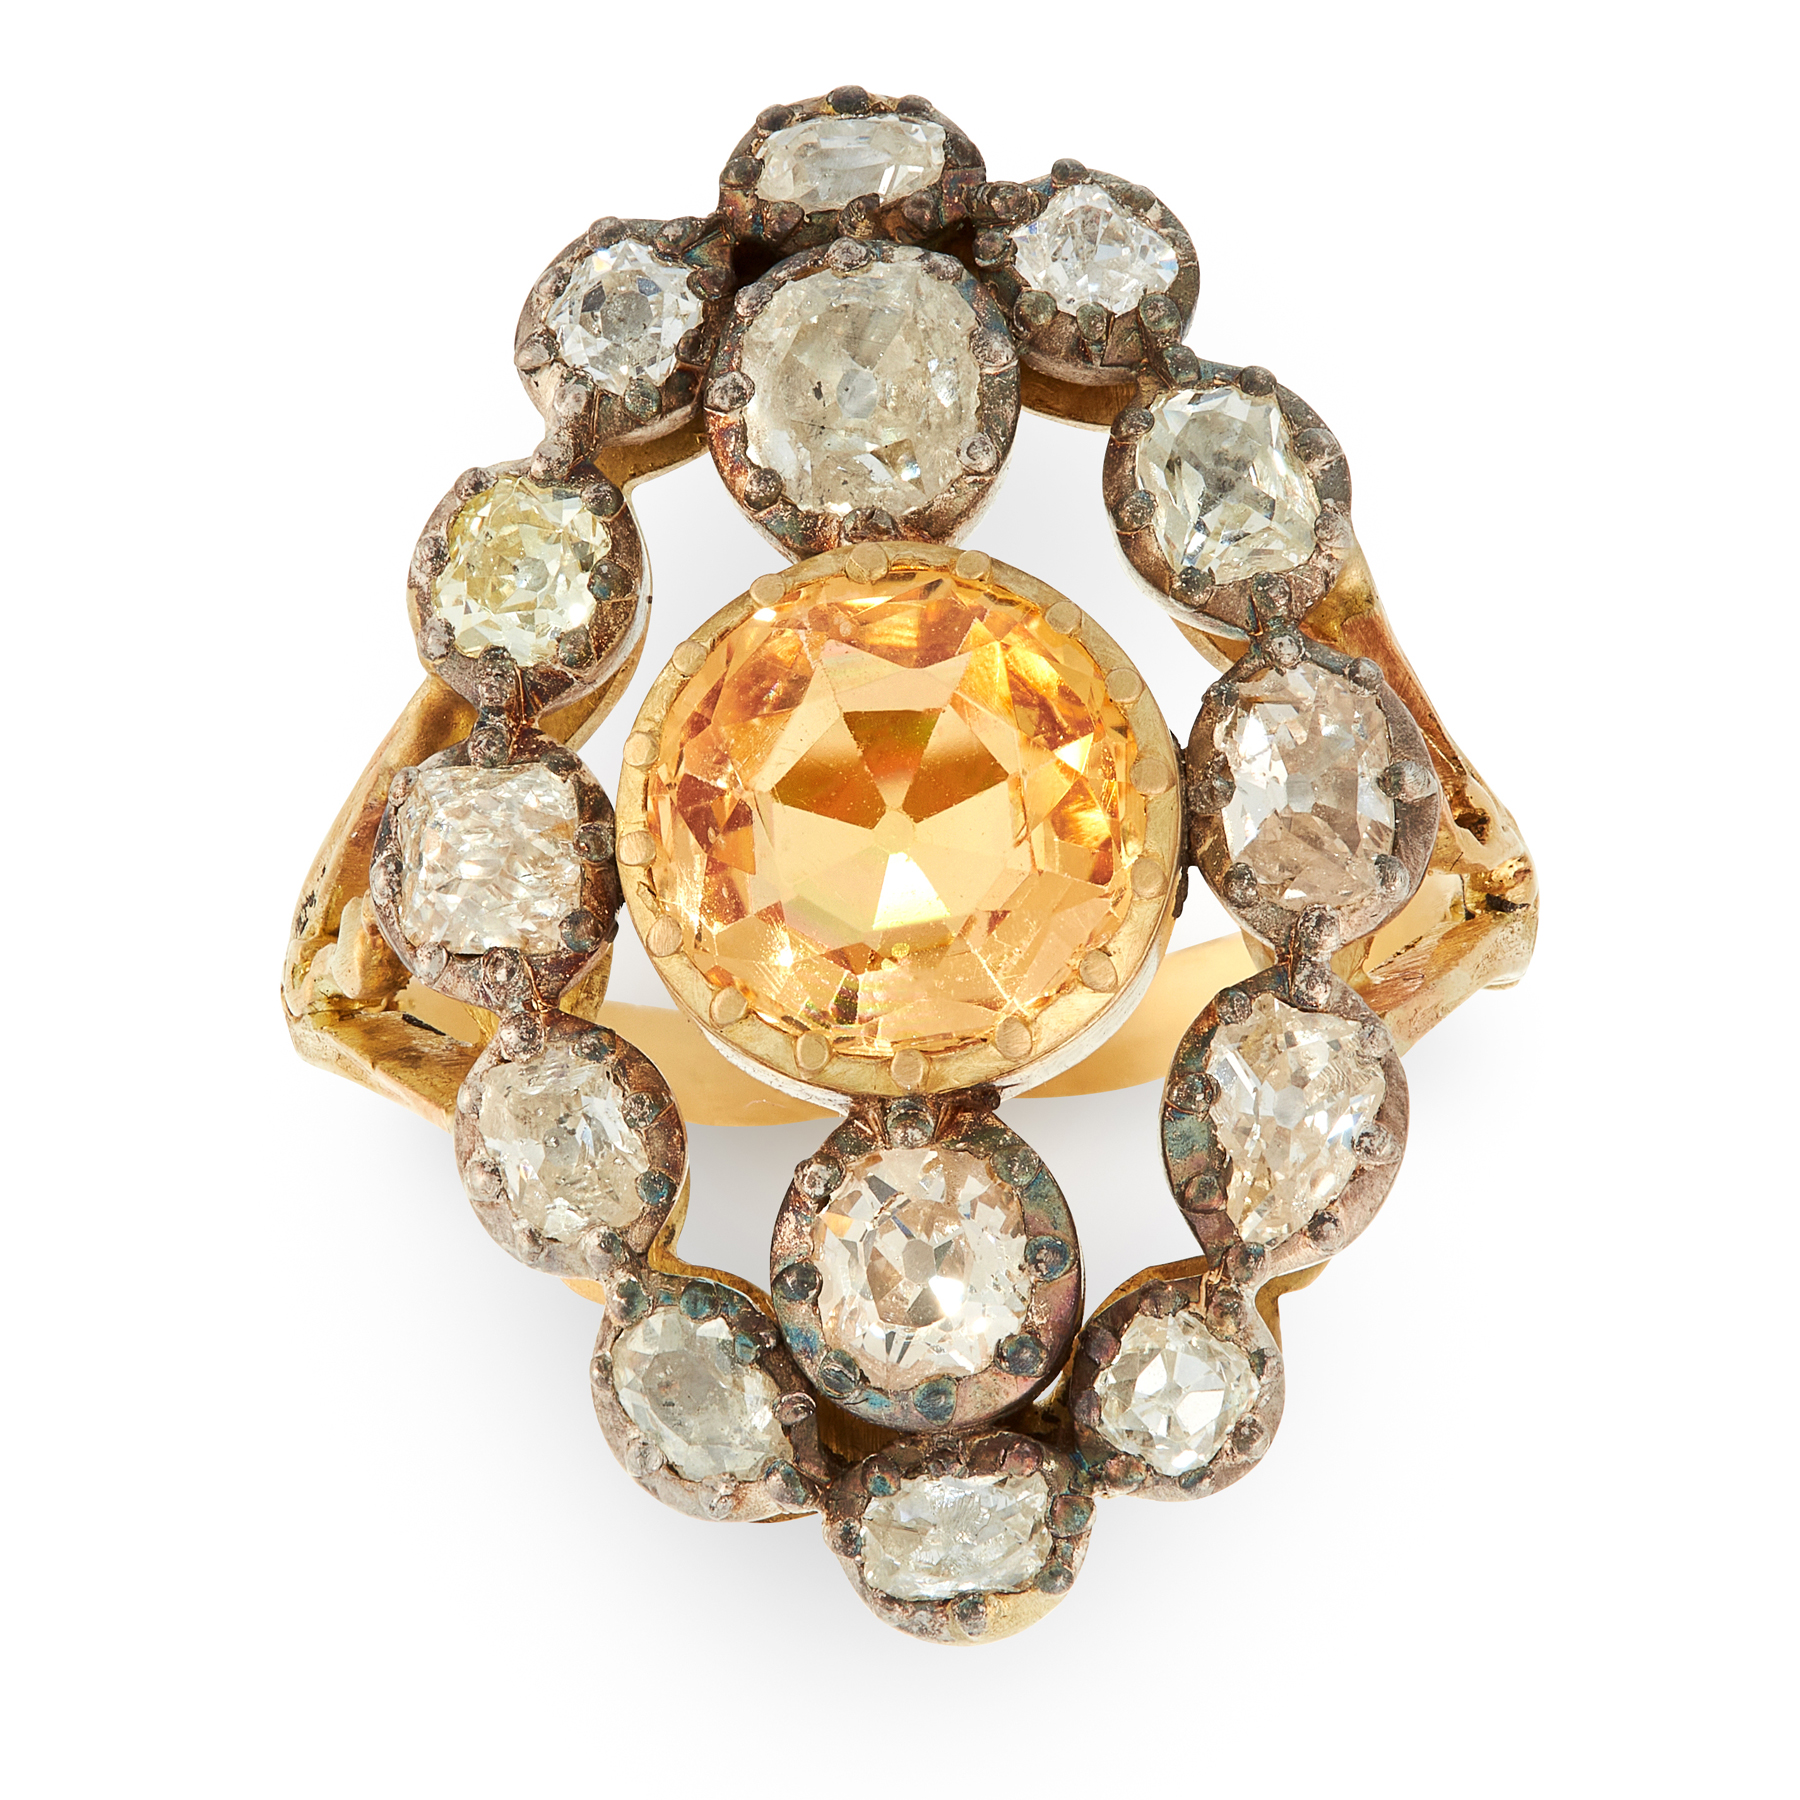 AN ANTIQUE IMPERIAL TOPAZ AND DIAMOND RING in high carat yellow gold and silver, set with a round - Image 2 of 2